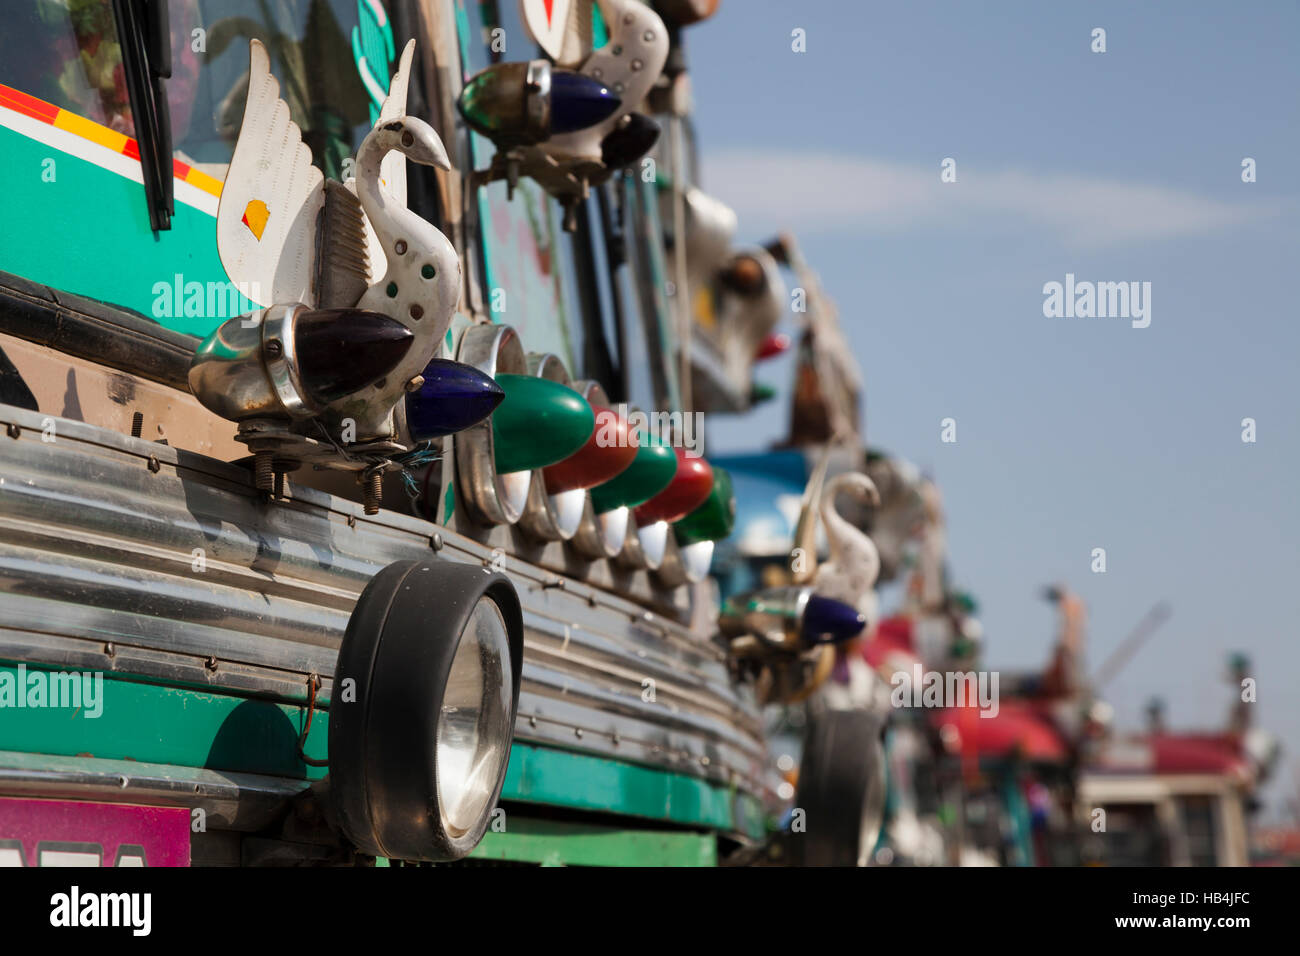 Decorated Indian passenger buses at Srinagar bus station, Kashmir, India - Stock Image